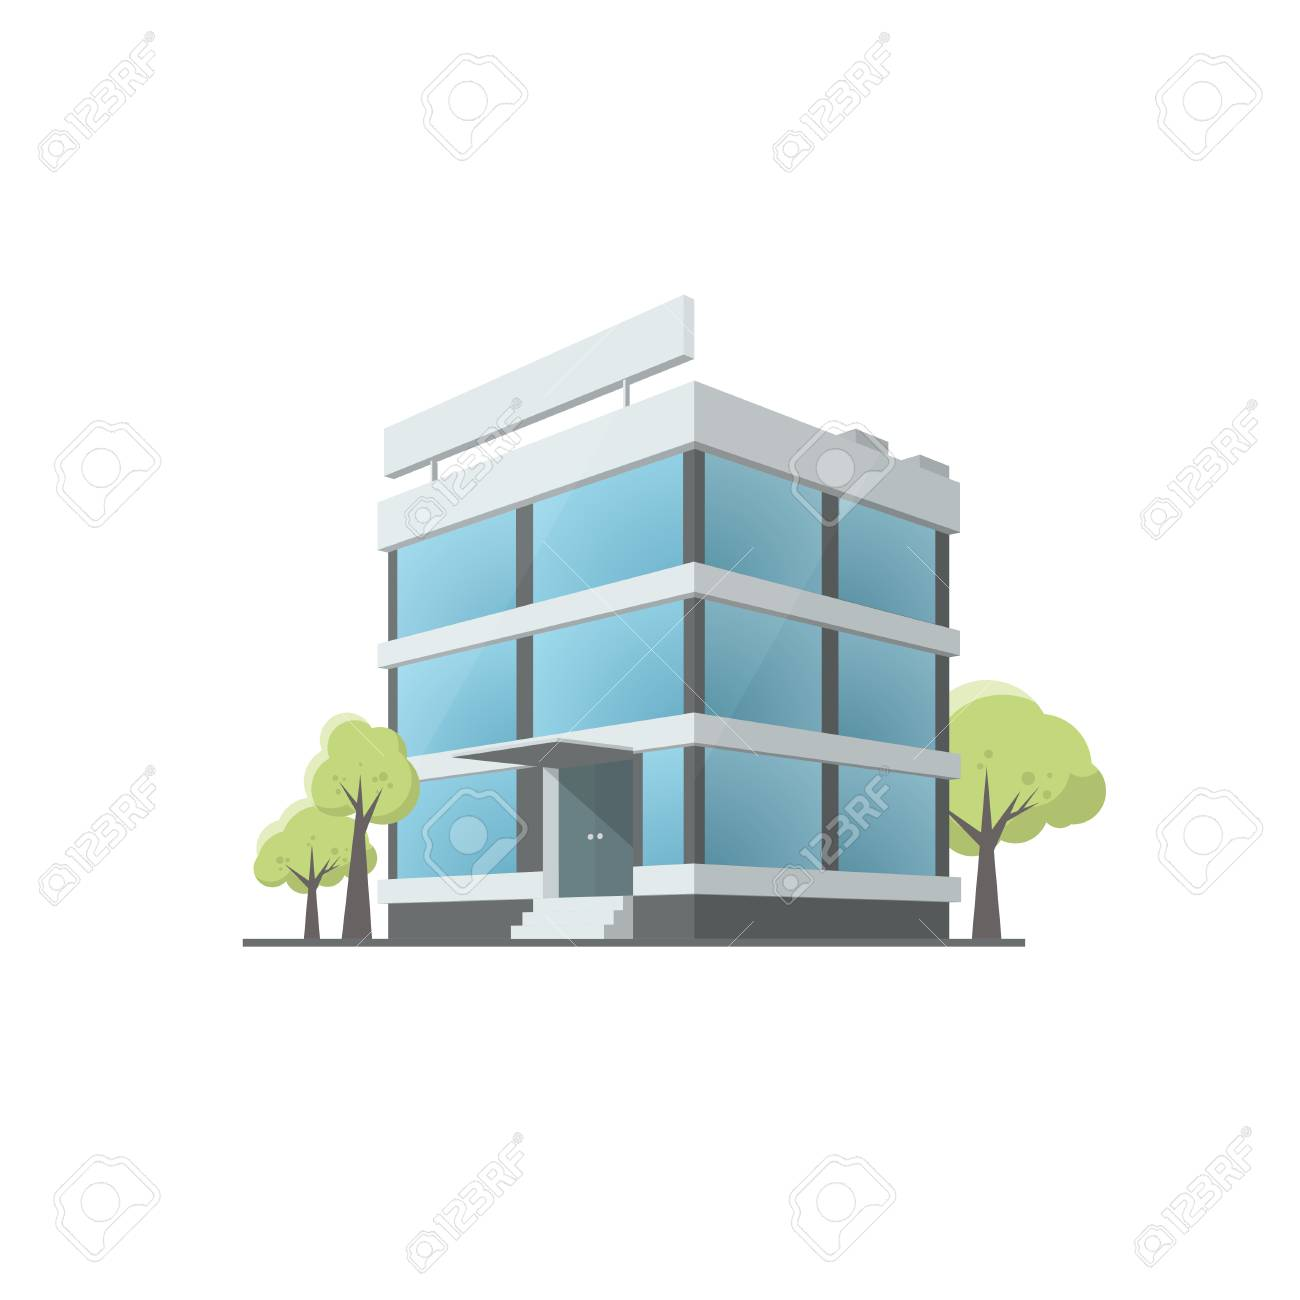 Office Building In Cartoon Style Illustration Isolated On White